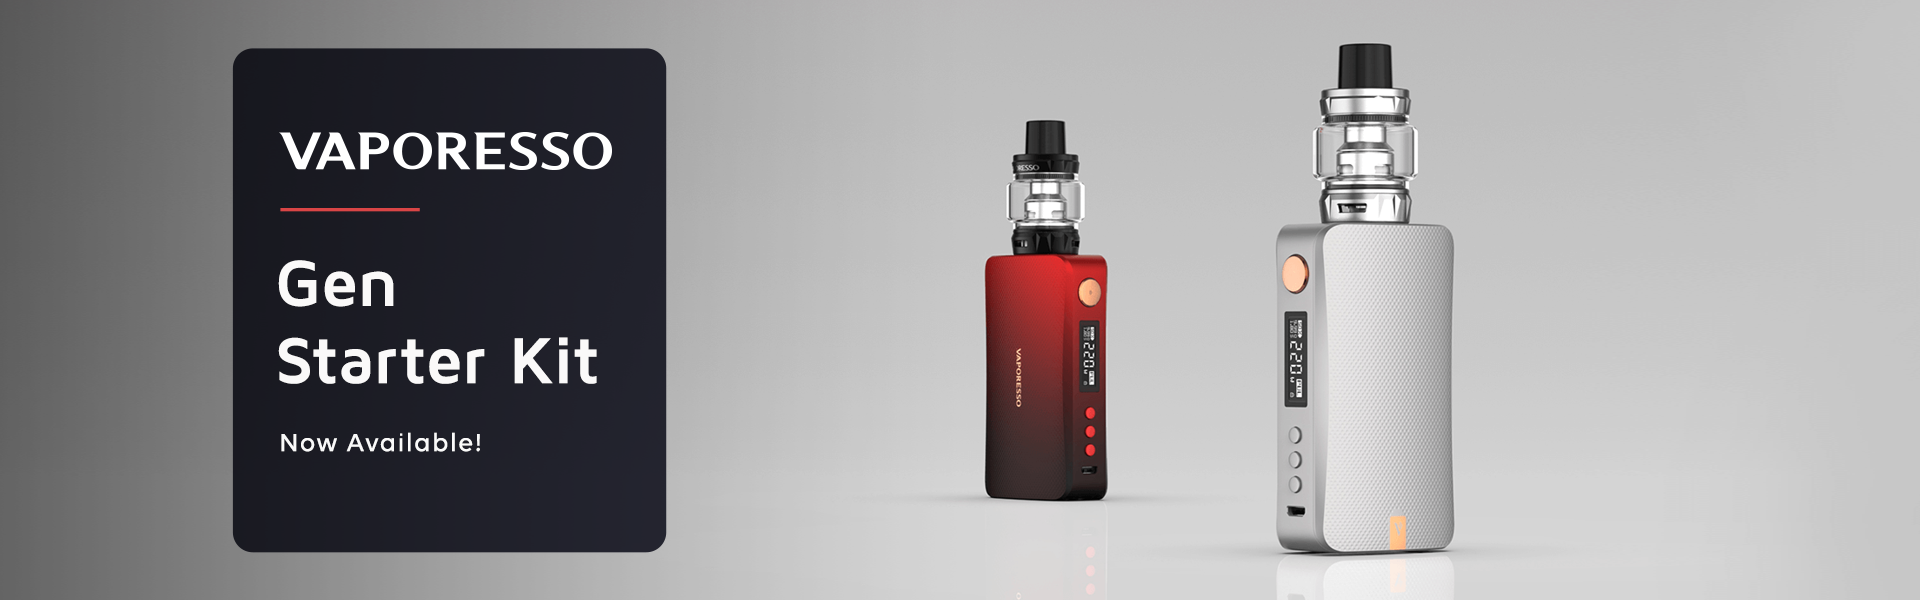 Vaporesso Gen 220W Starter Kit now available